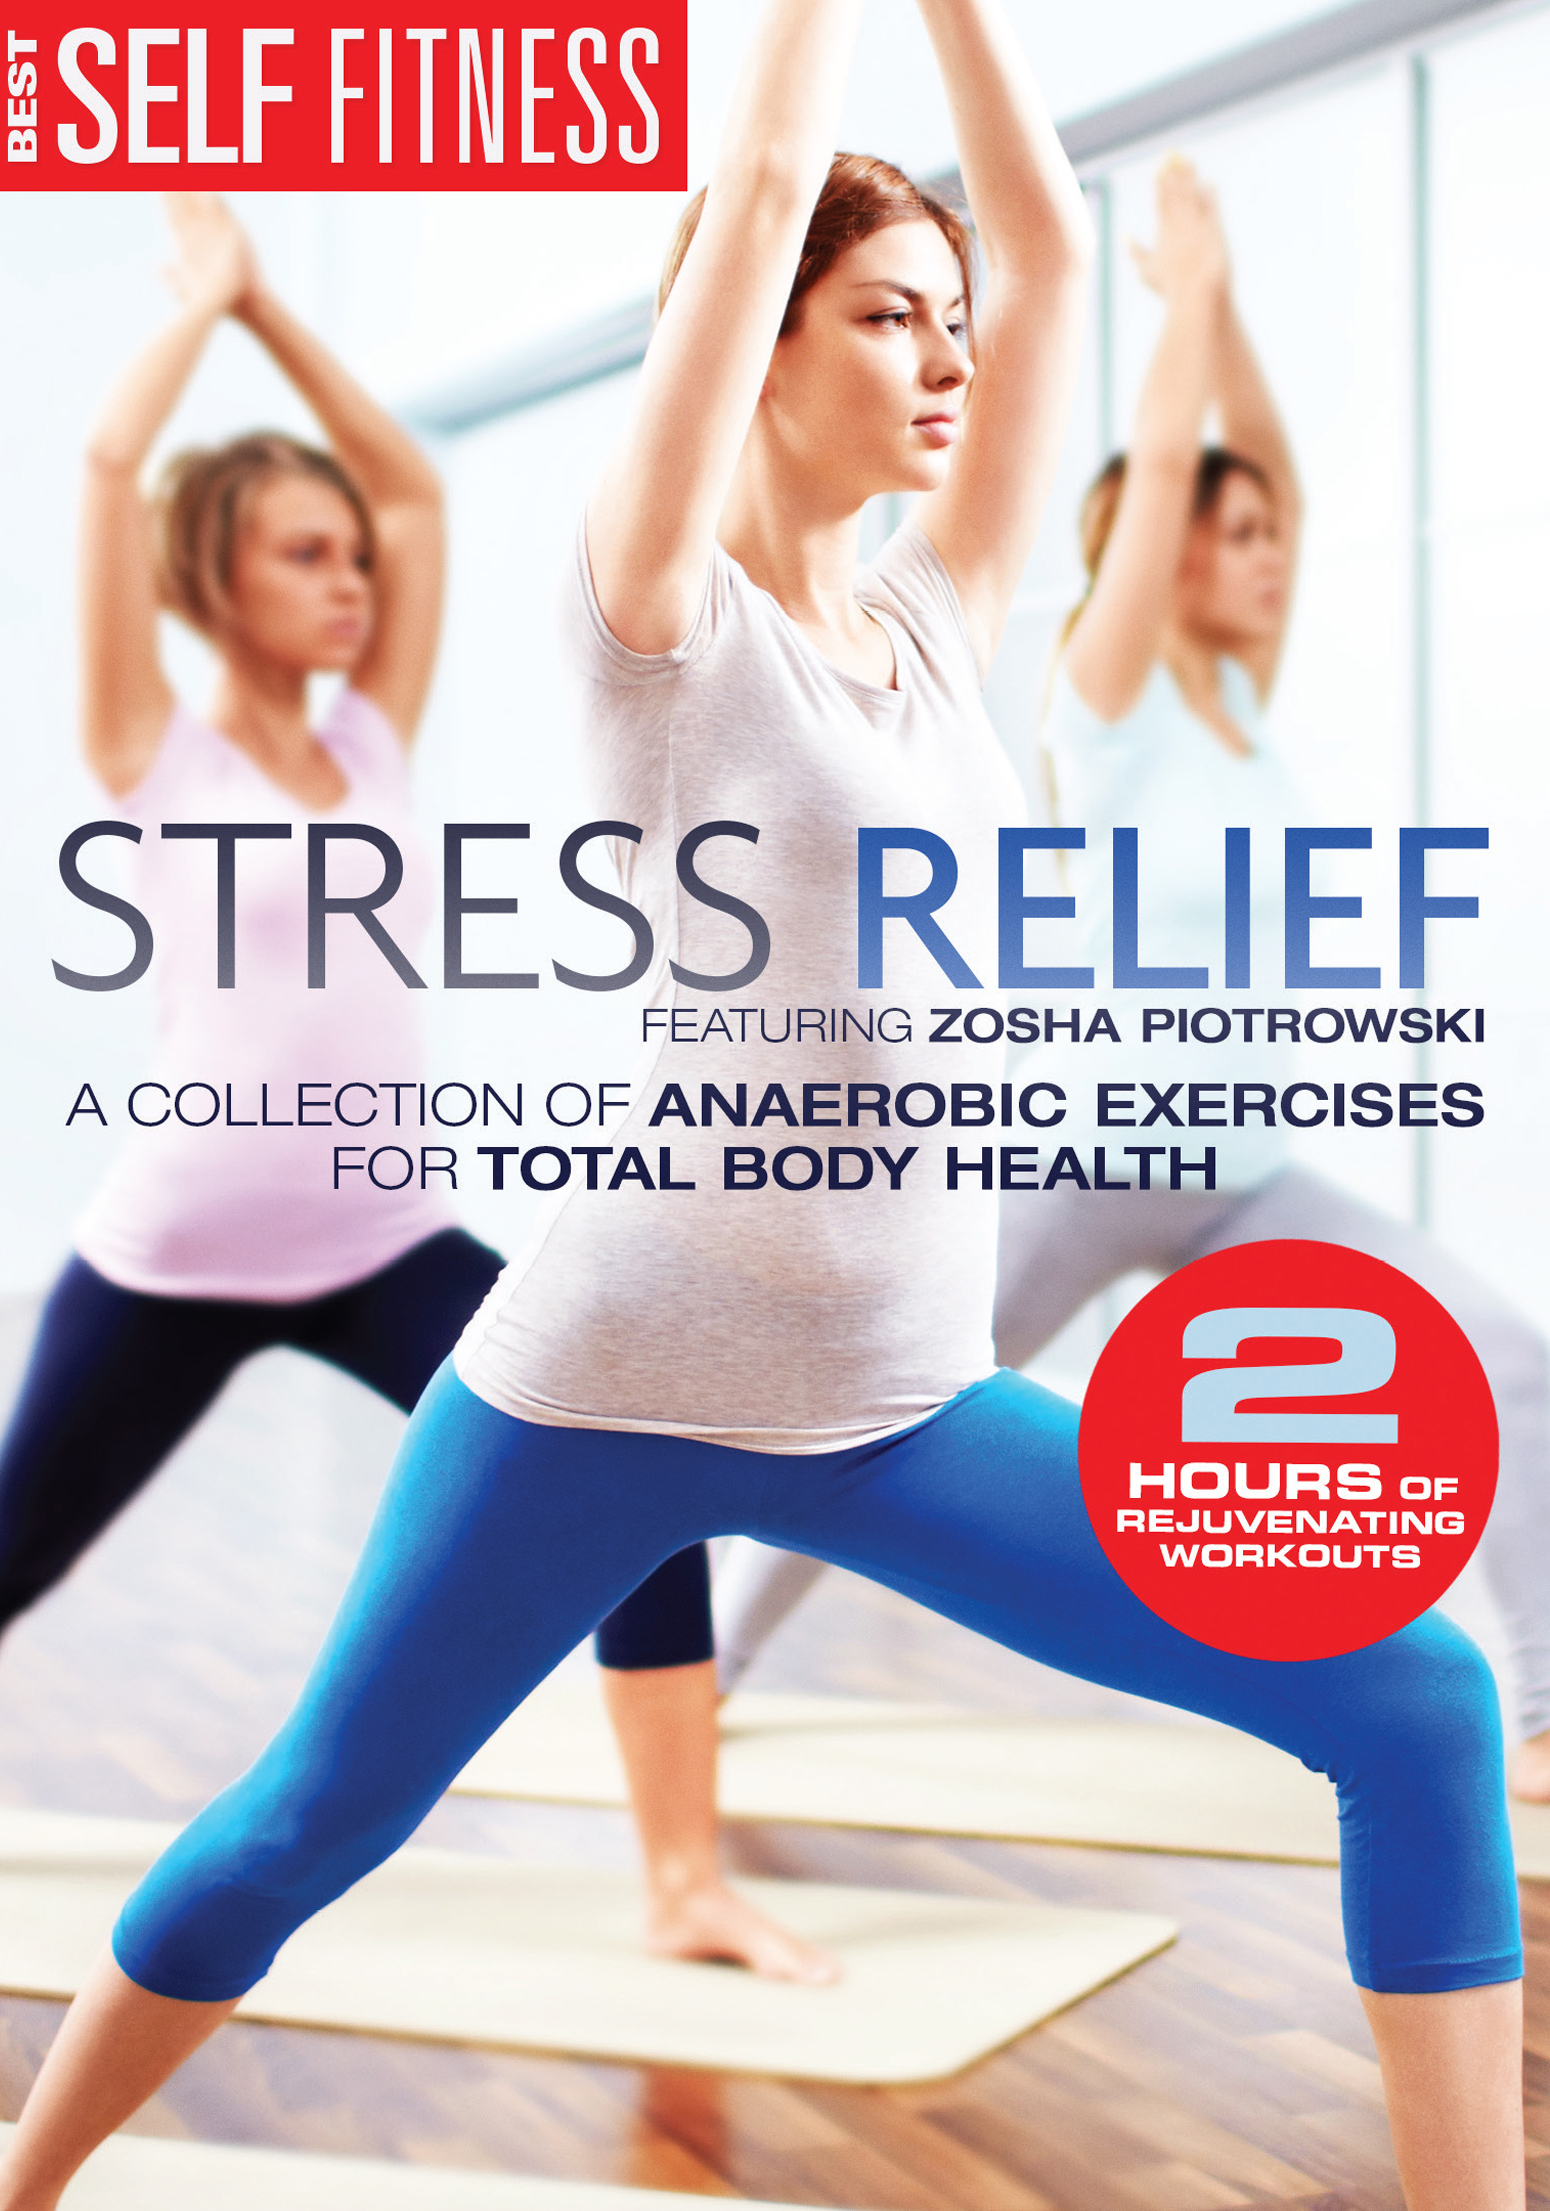 Best Self Fitness: Stress Relief